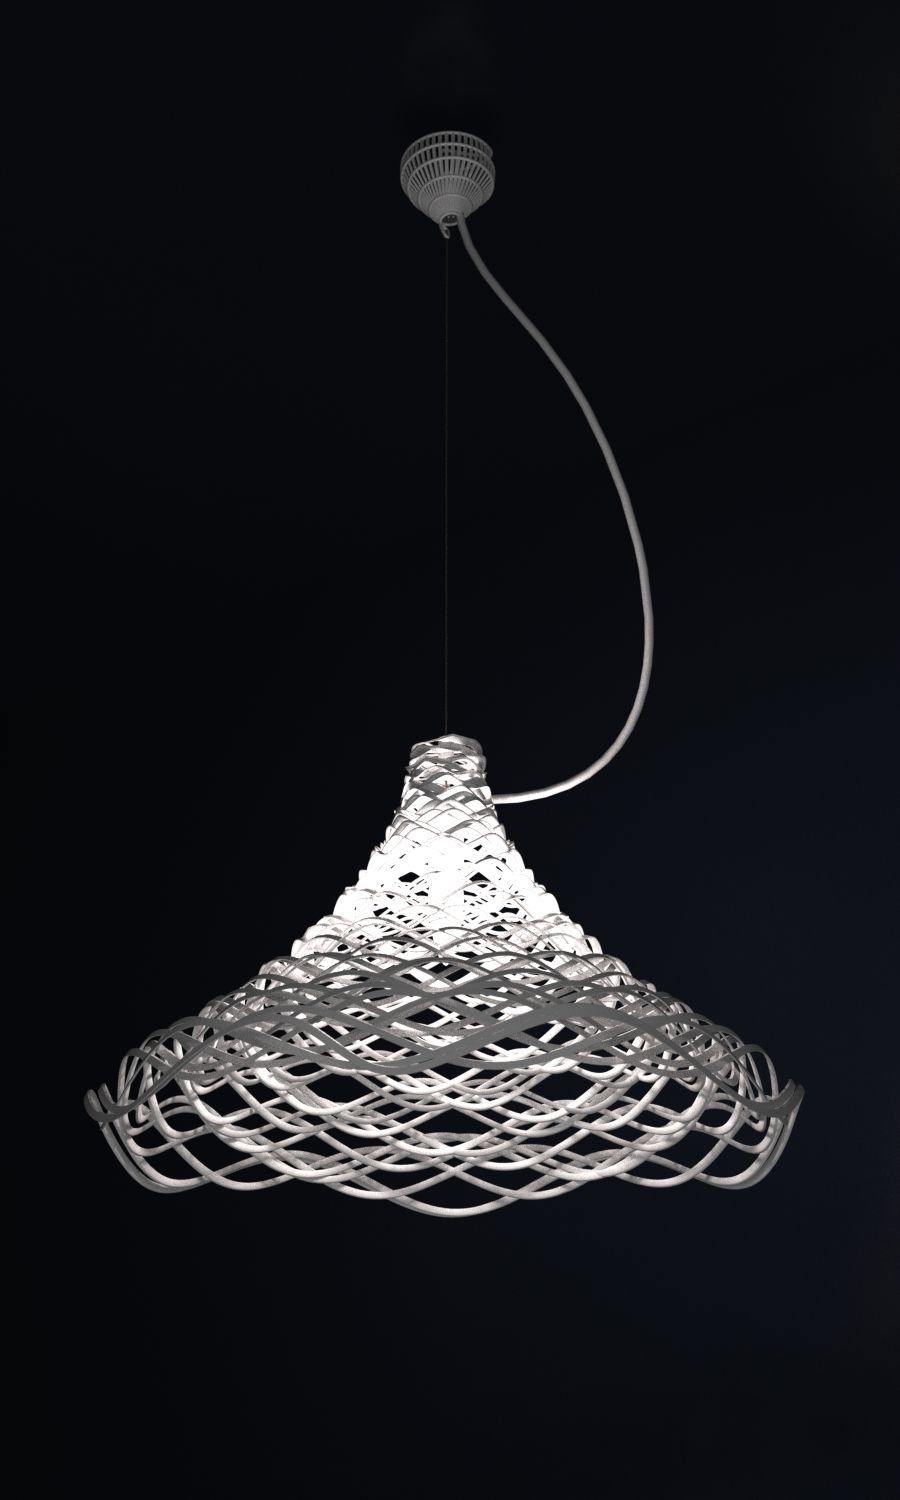 3d Print Lamp Shade Lighting Pattern Lights Fantastic 3d Lamp